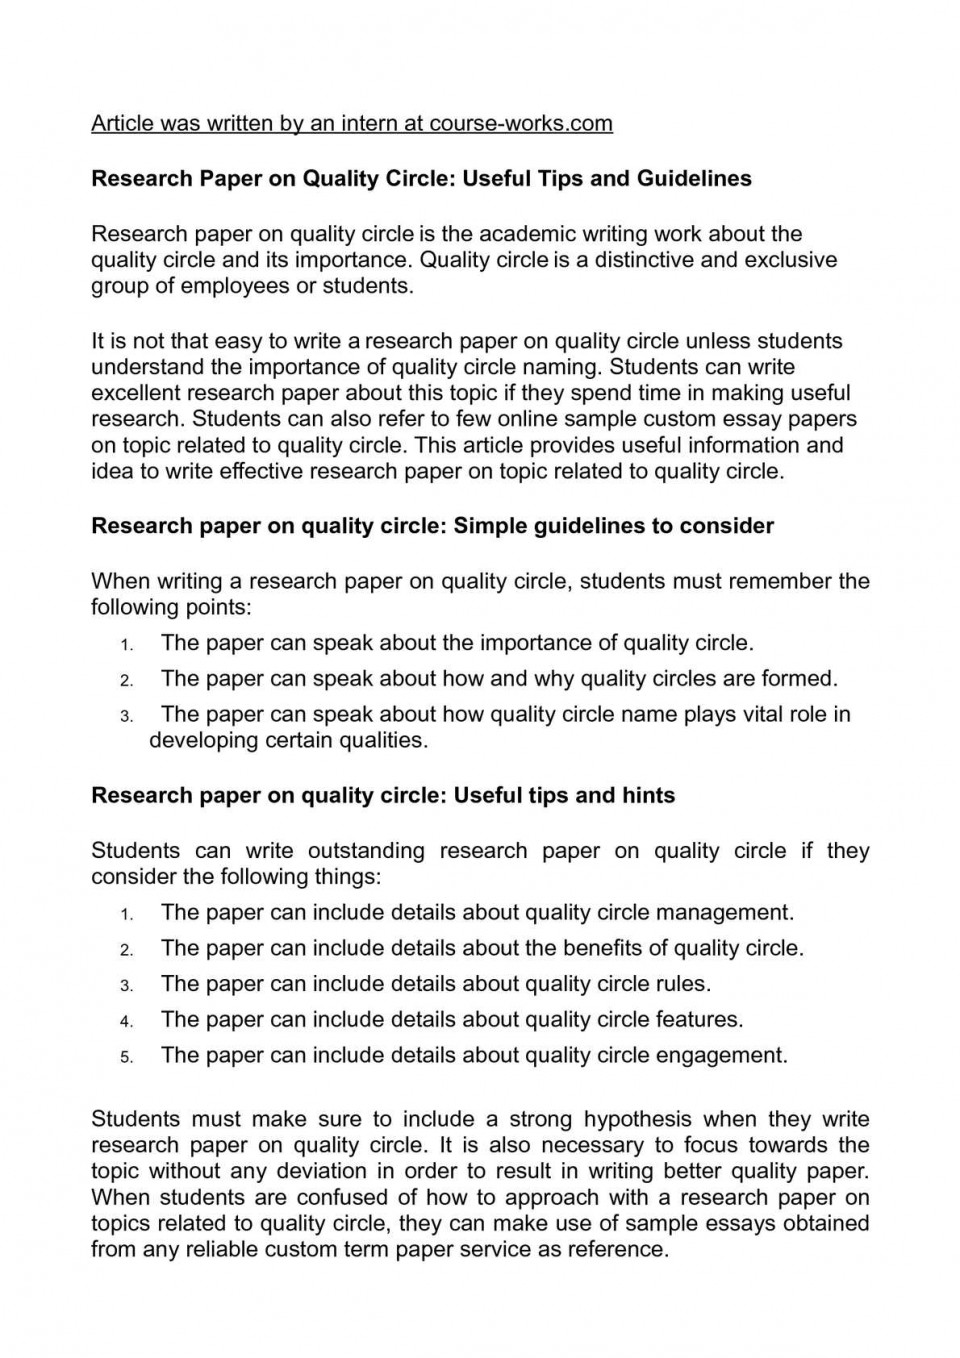 018 Tips For Writing Research Papers Paper Unforgettable A History Fast Quickly 960